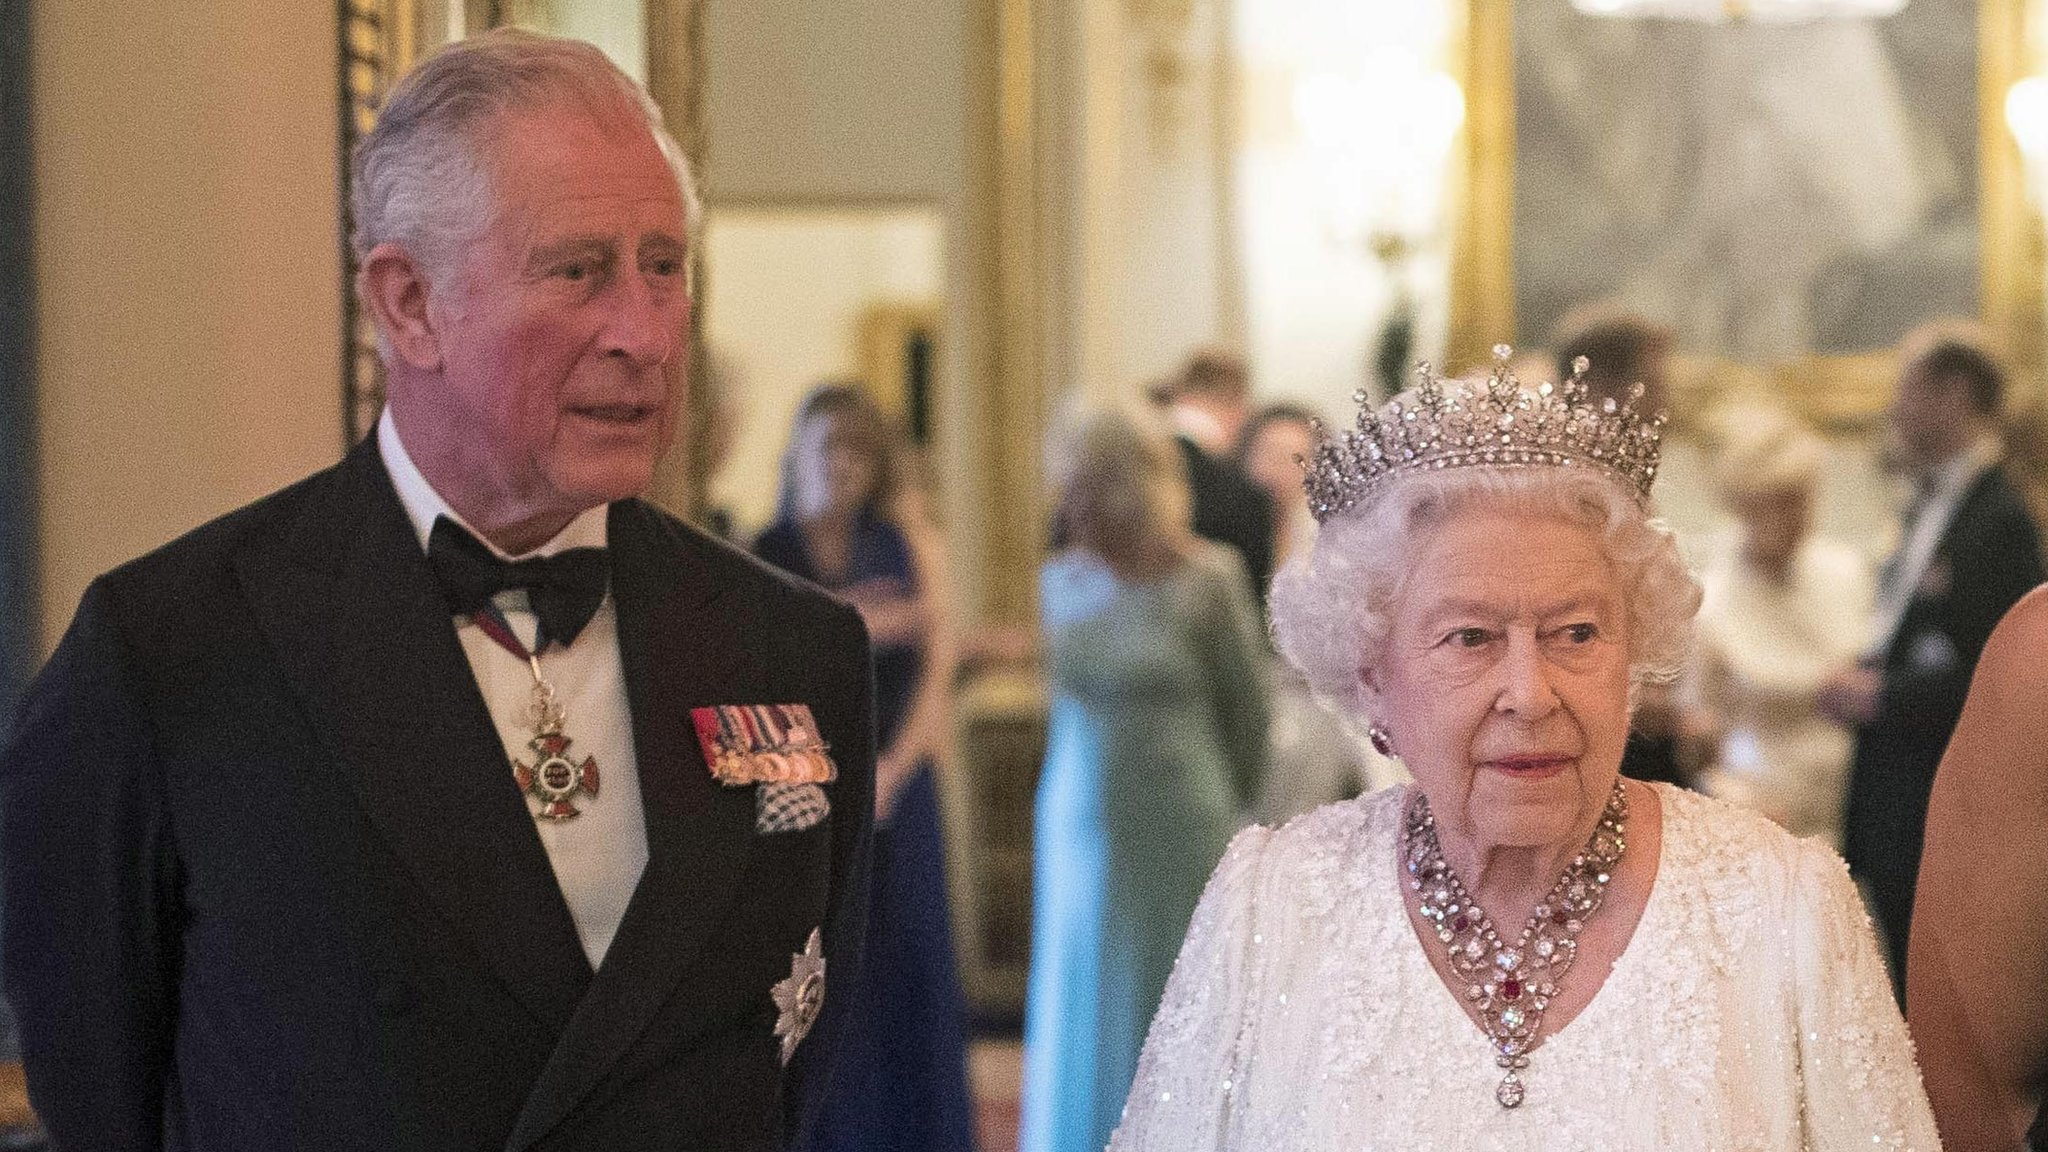 Commonwealth meeting: Leaders discuss who will succeed Queen as head